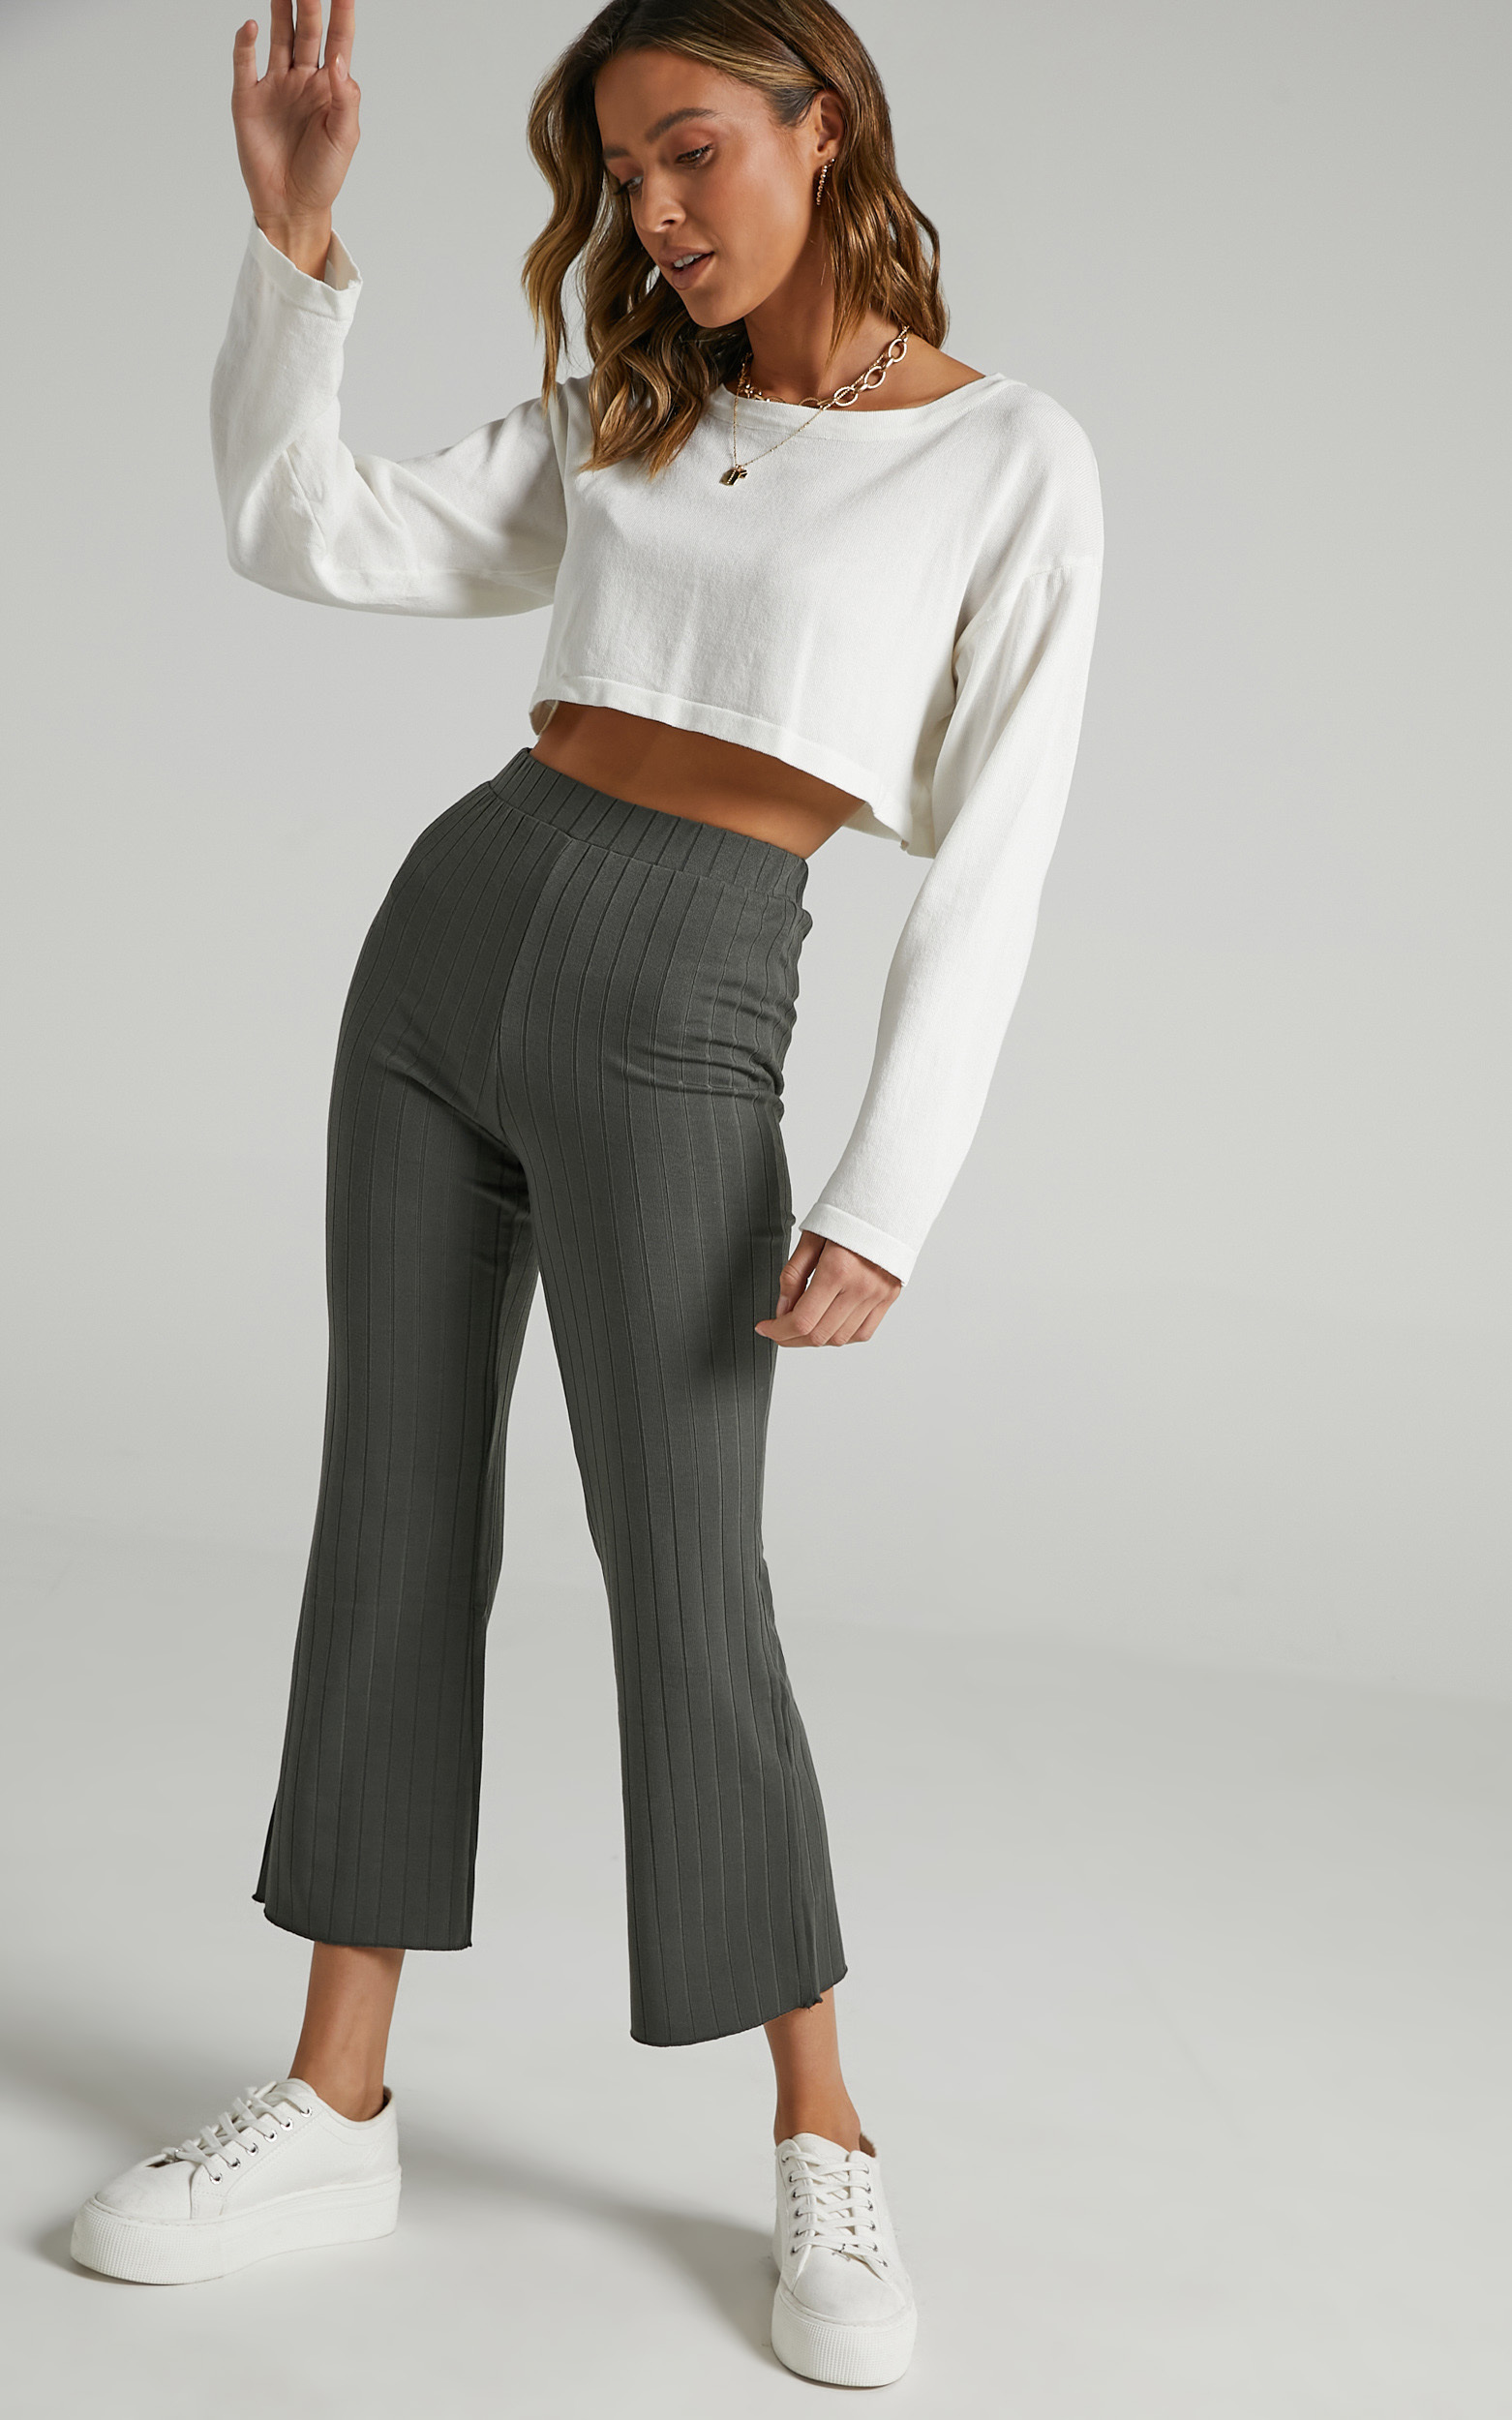 Alondra Pants in Khaki - 14 (XL), GRN1, hi-res image number null